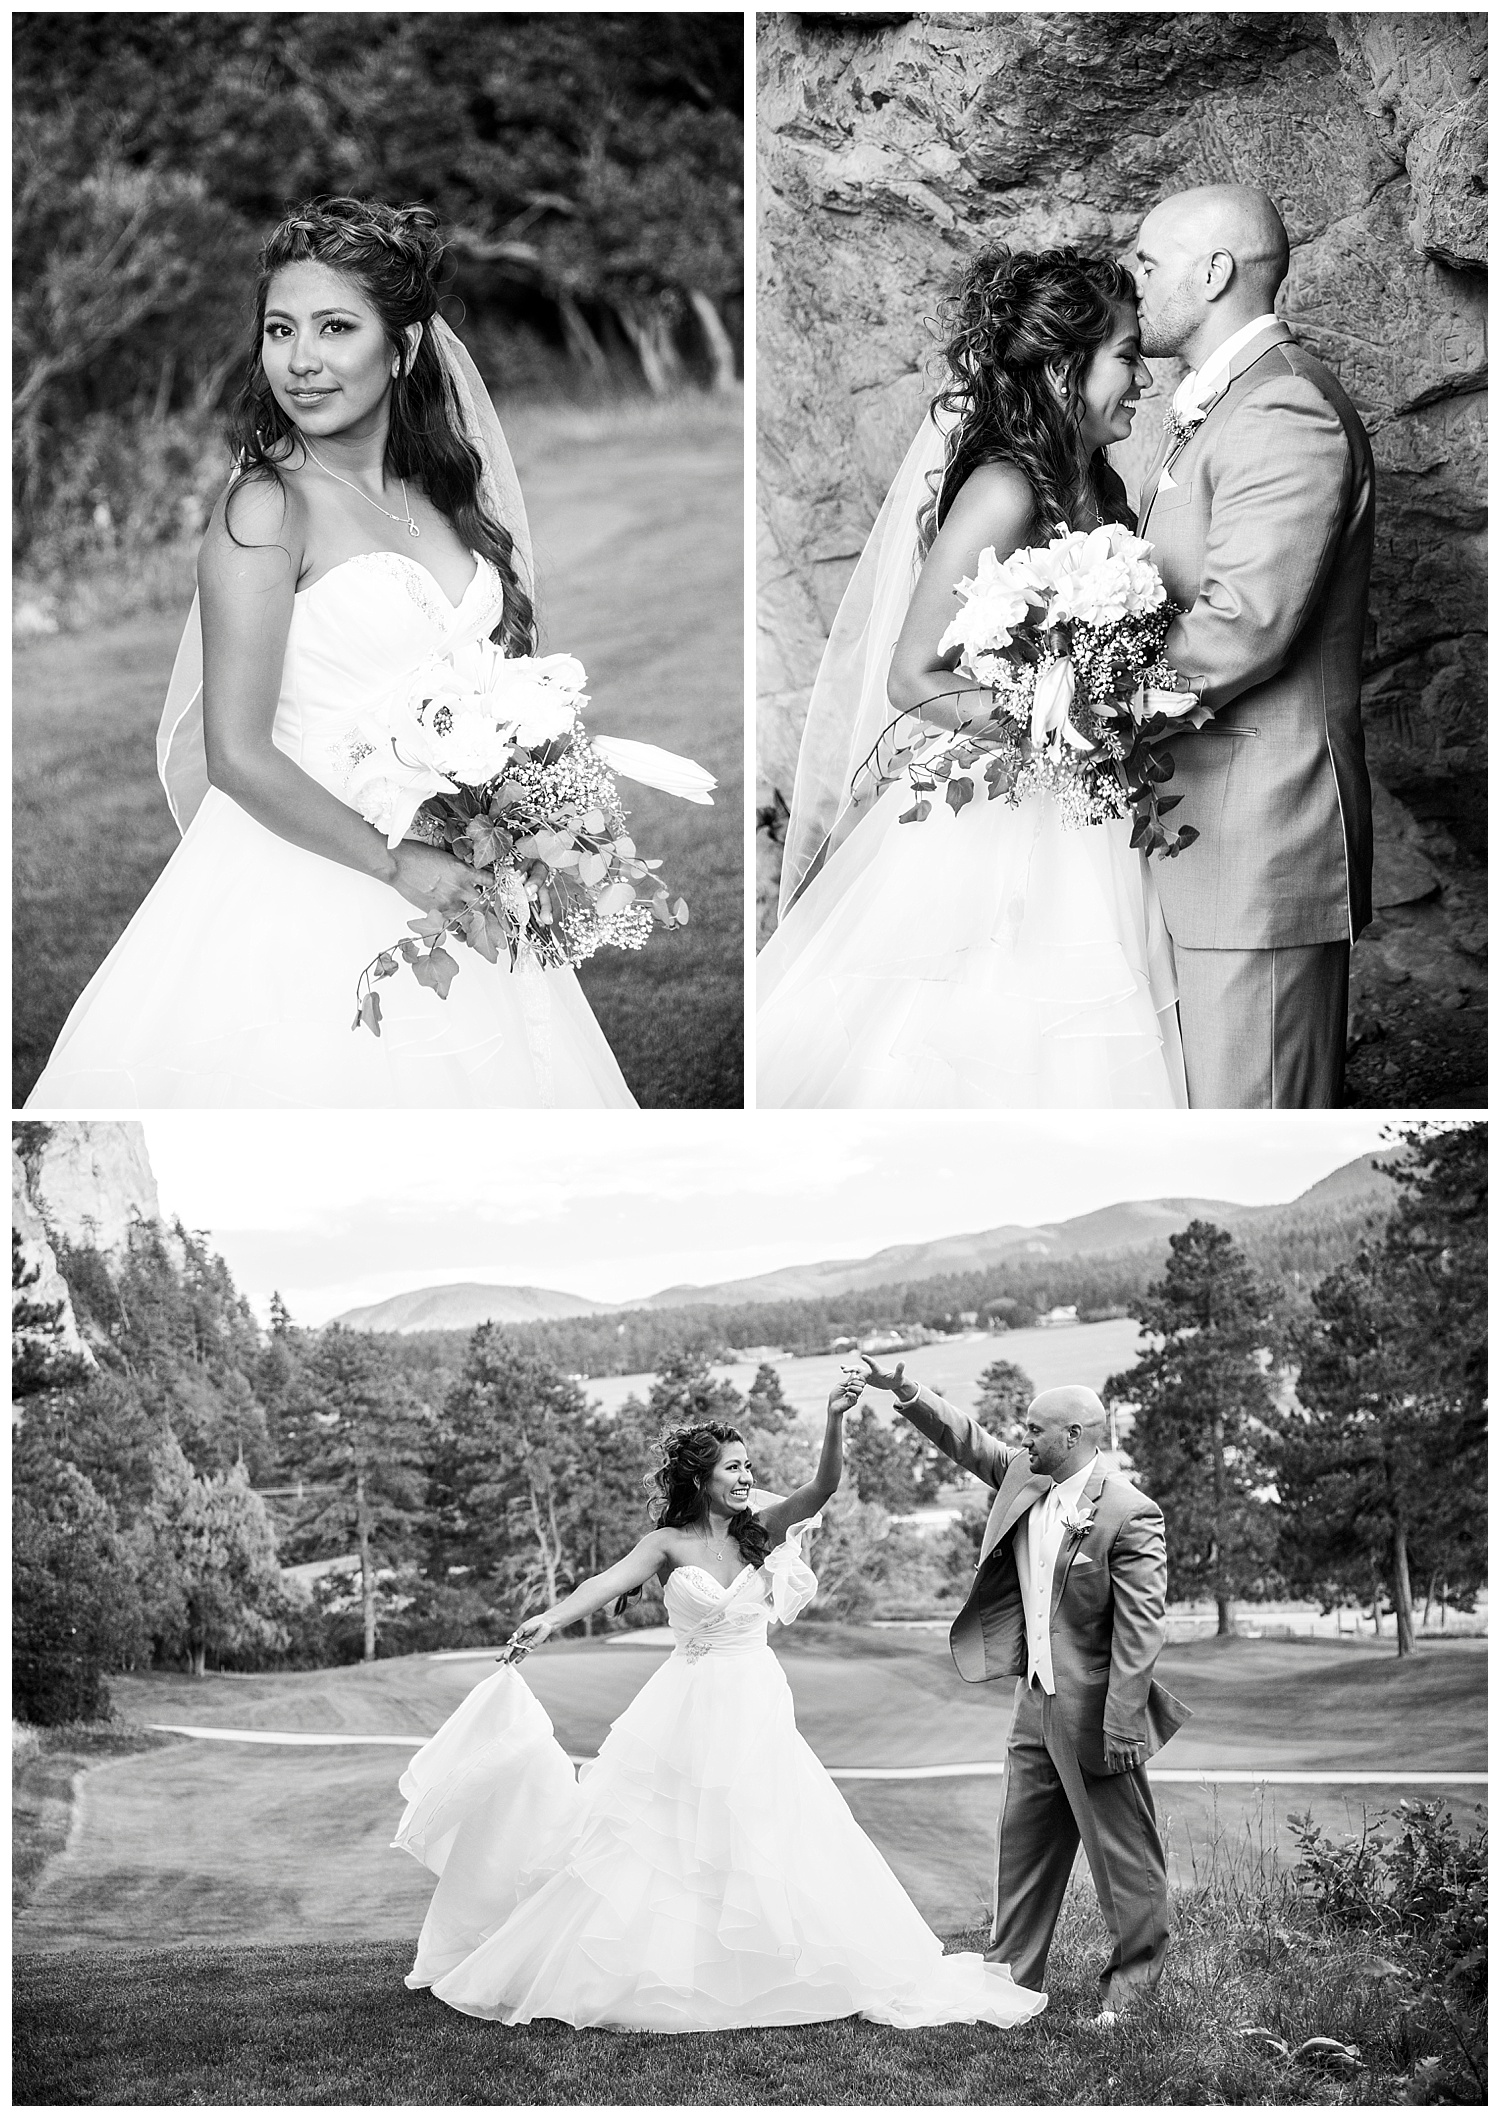 Perry_Park_Country_Club_Wedding_Larkspur_Colorado_Apollo_Fields_35.jpg